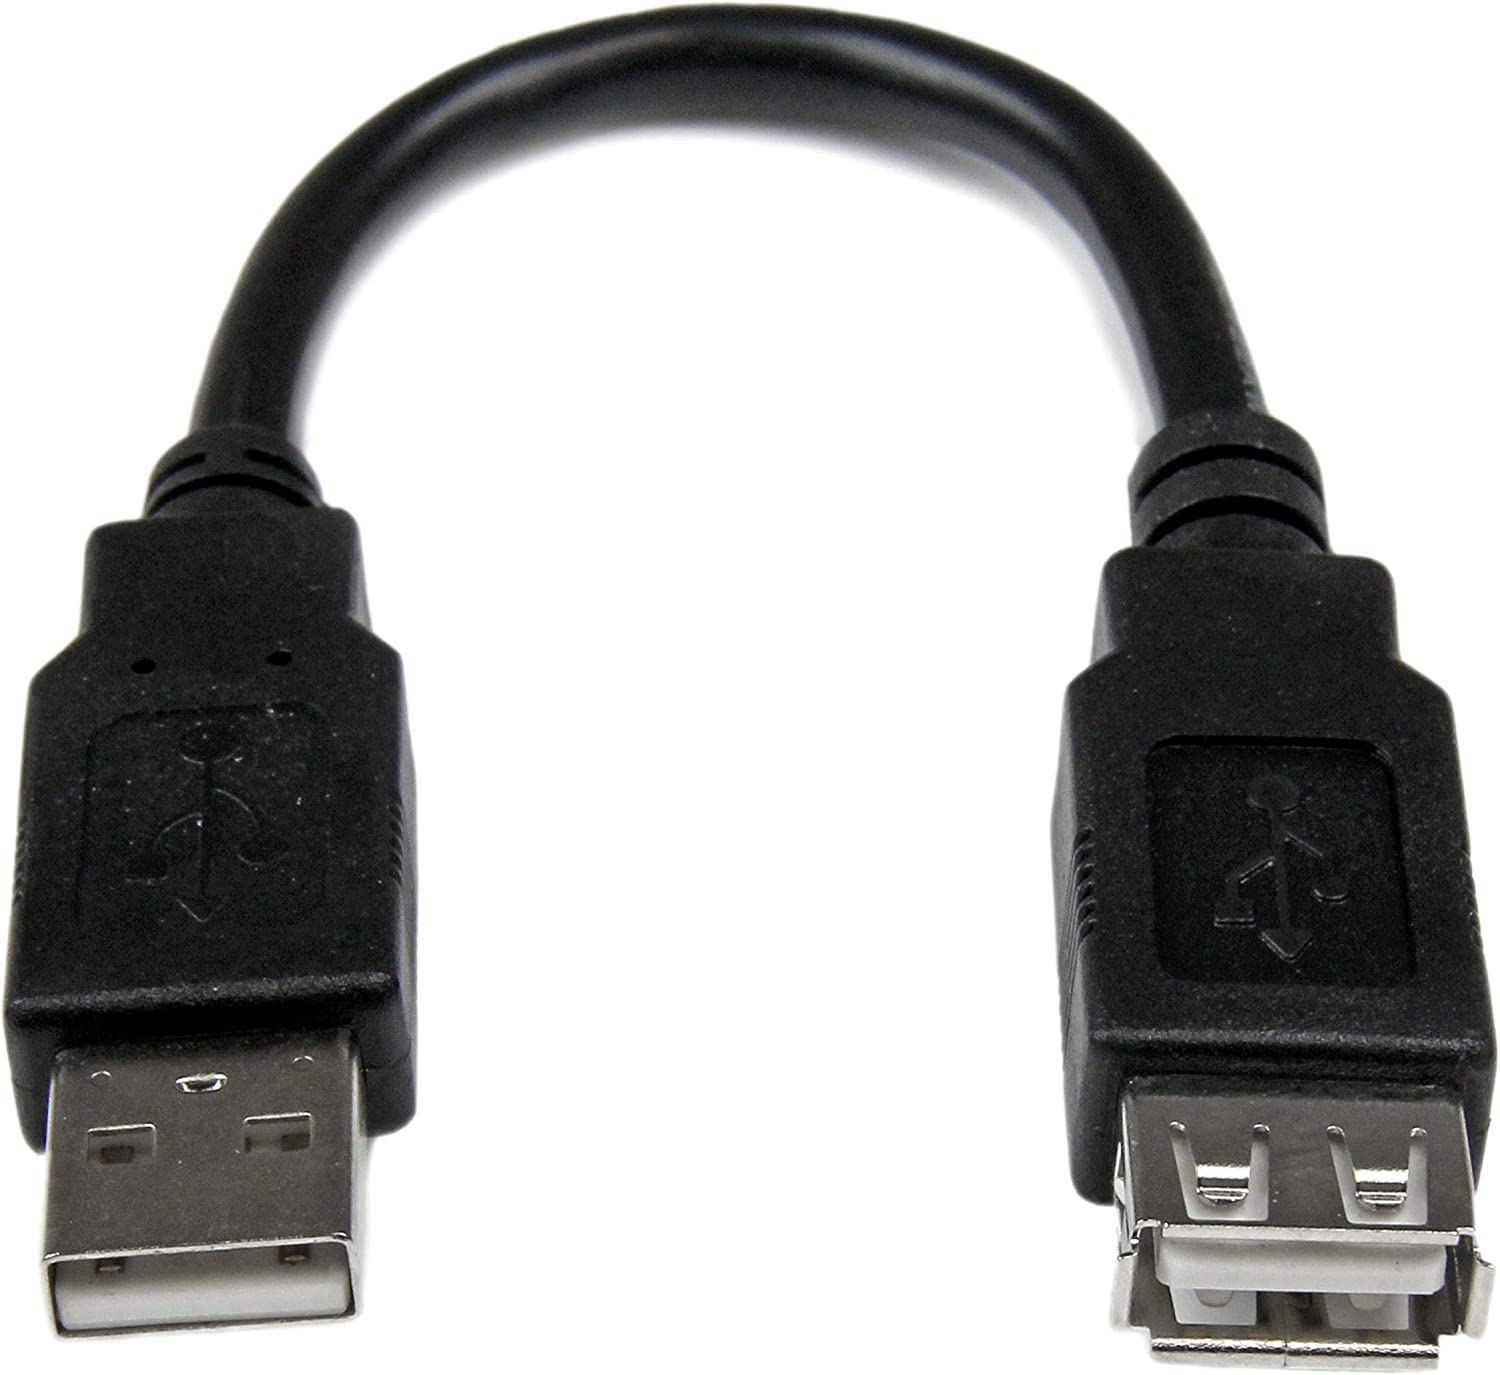 6in USB 2.0 Extension Adapter Cable A to A - M/F